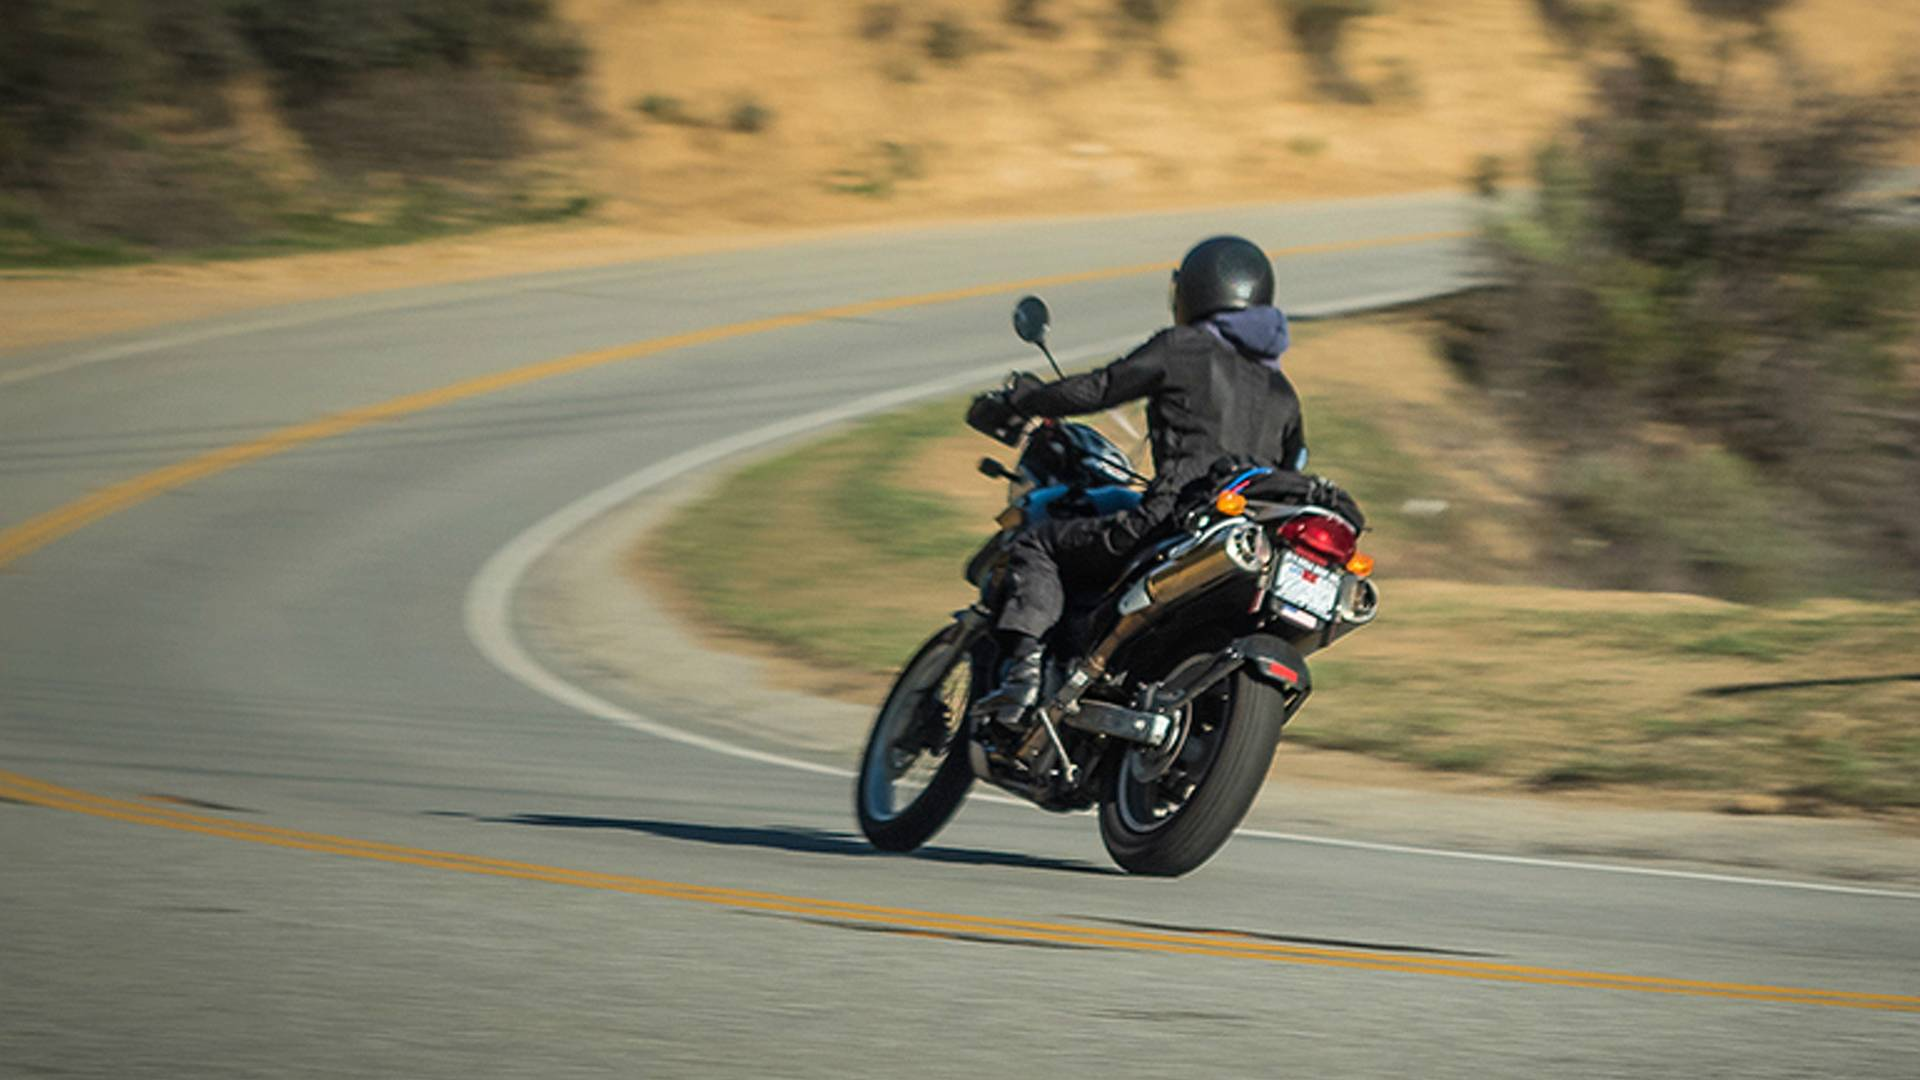 5 Reasons Why You Should Purchase A Motorcycle